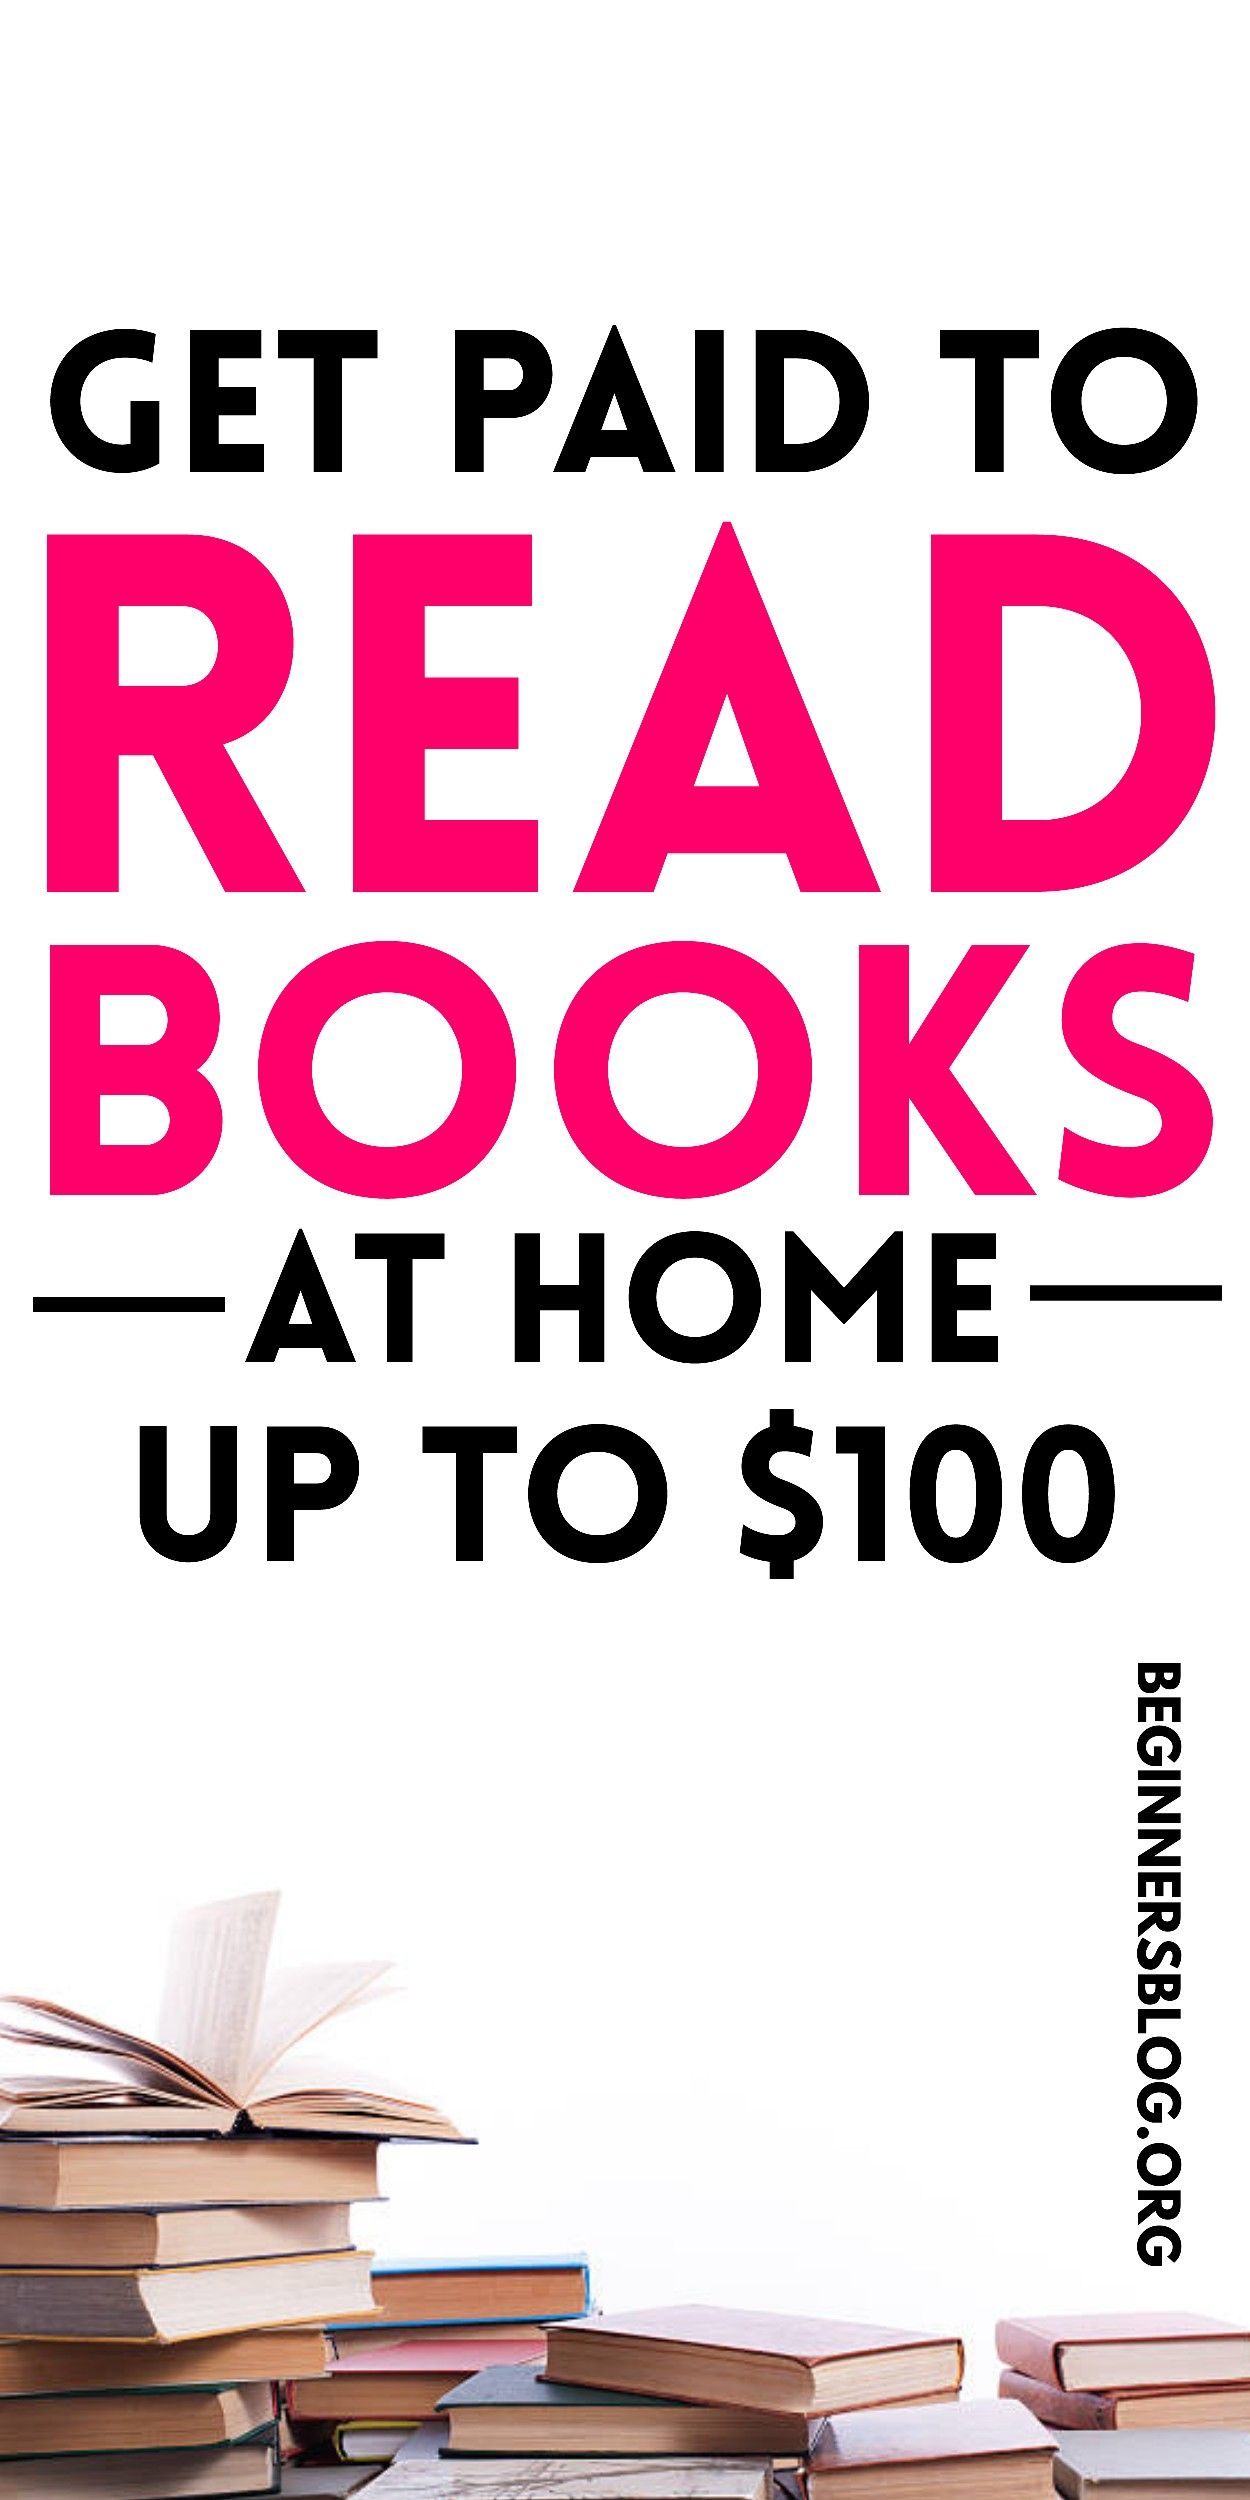 Get Paid To Read Books At Home